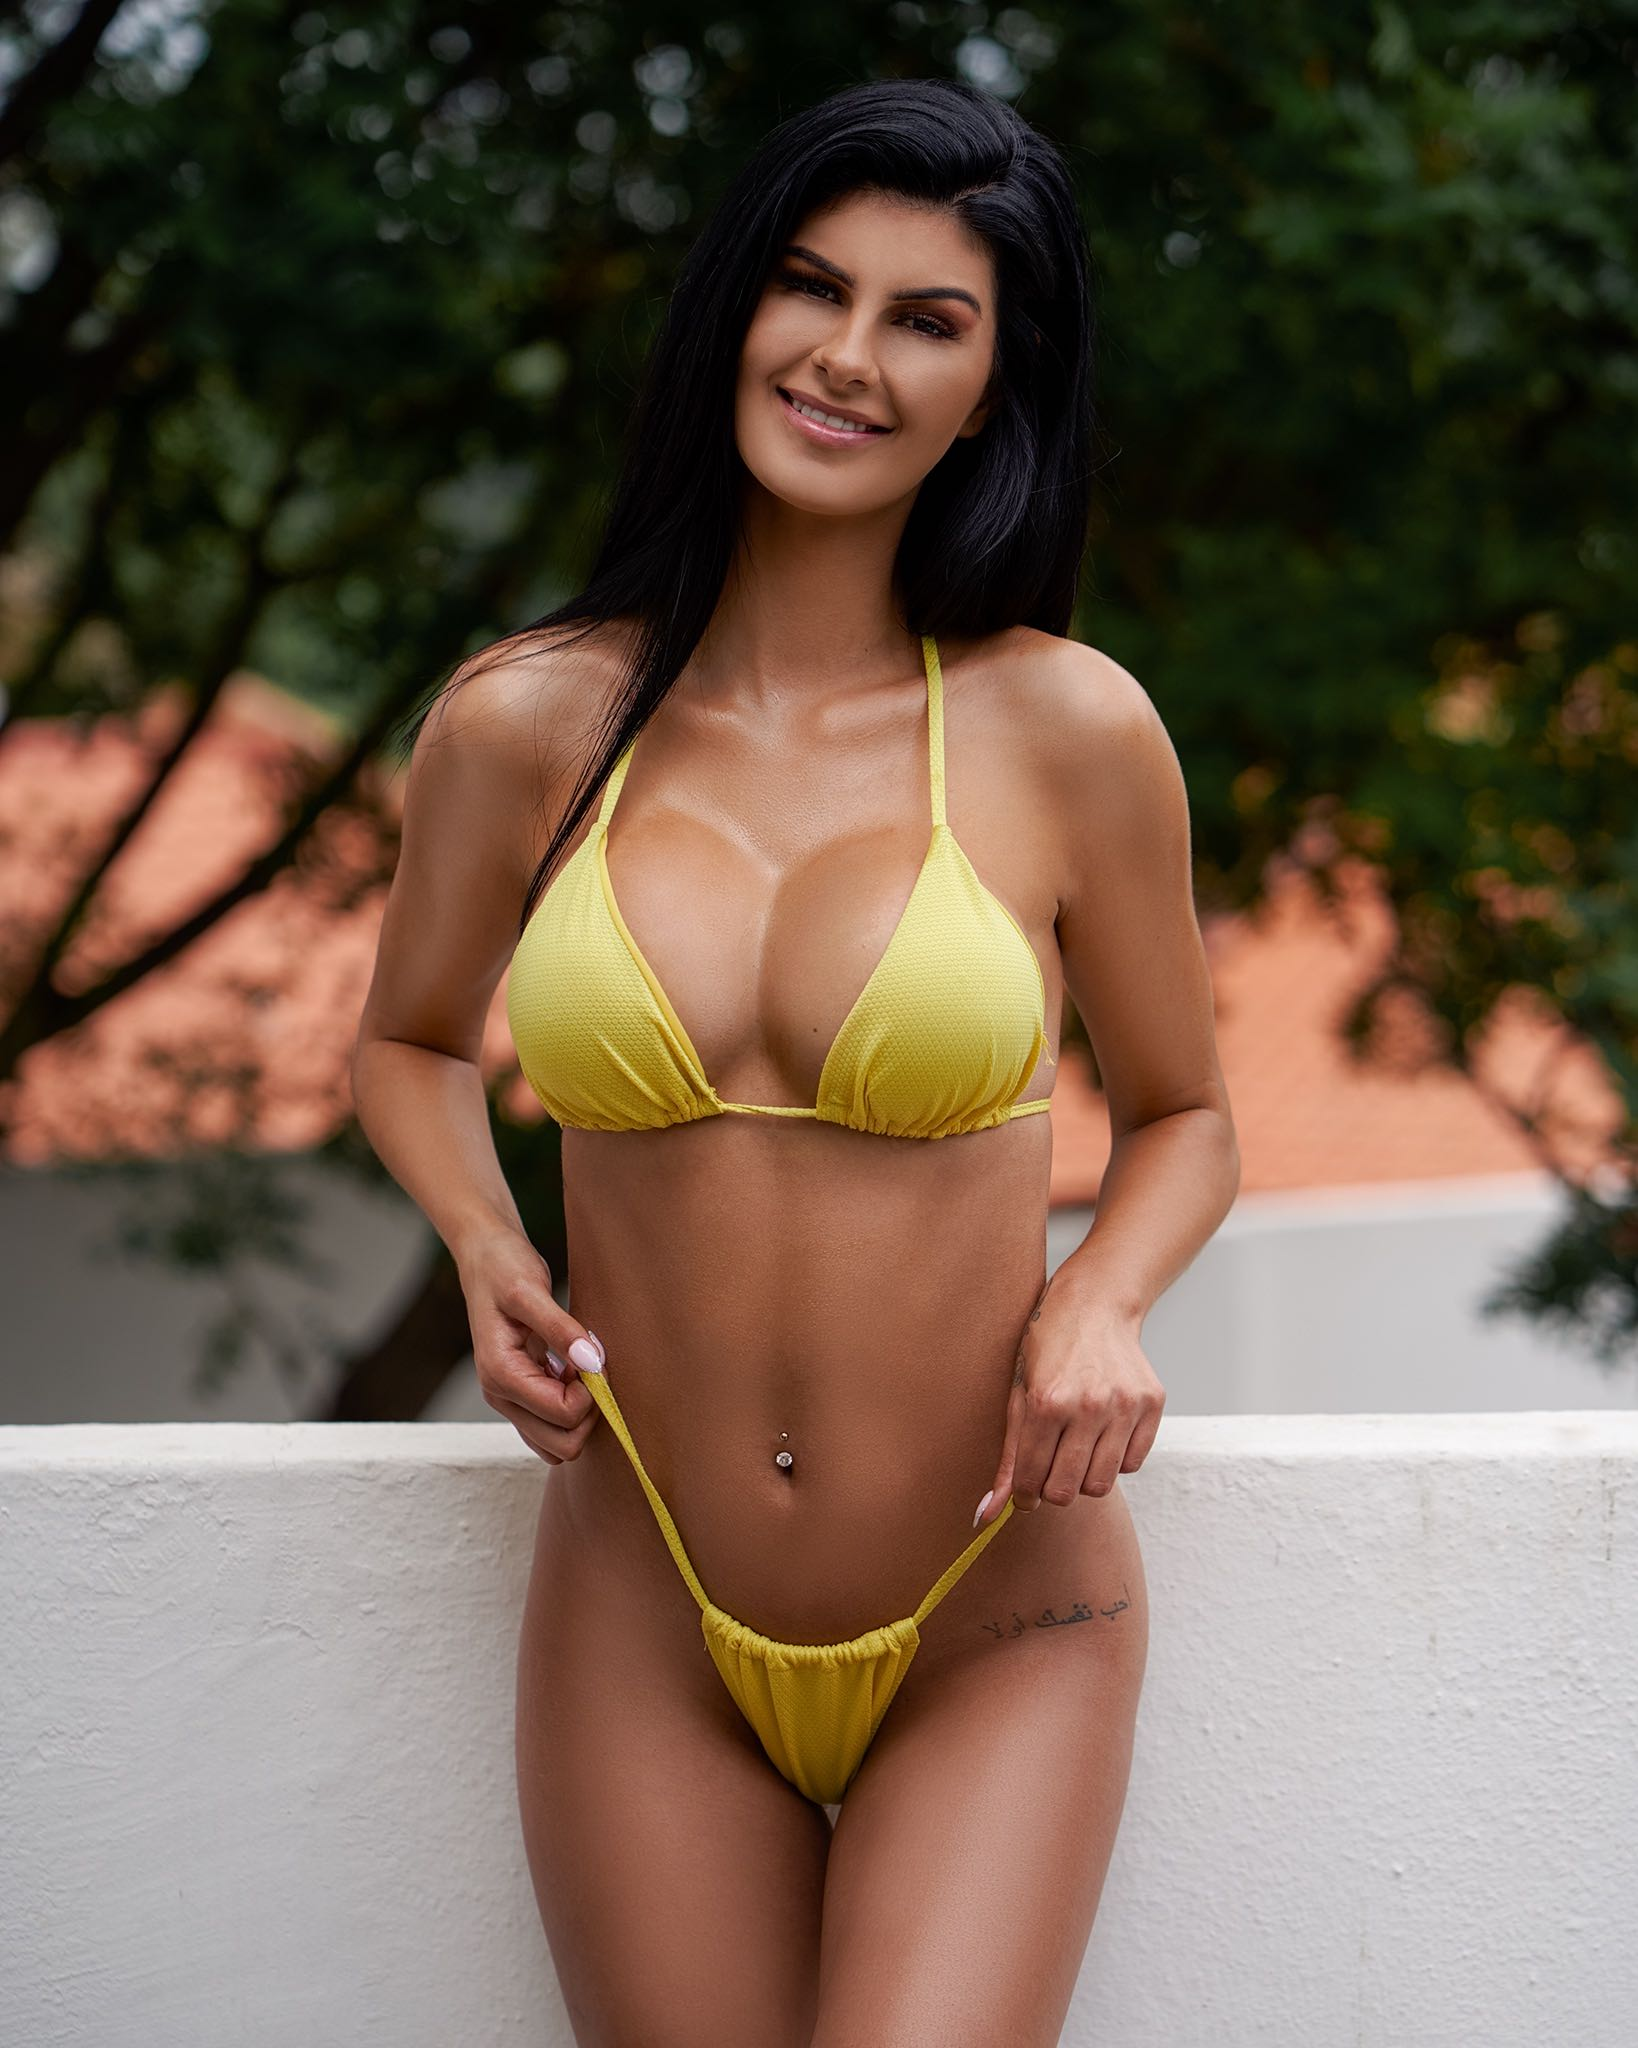 Our South African Babes feature with Chante Janse van Rensburg